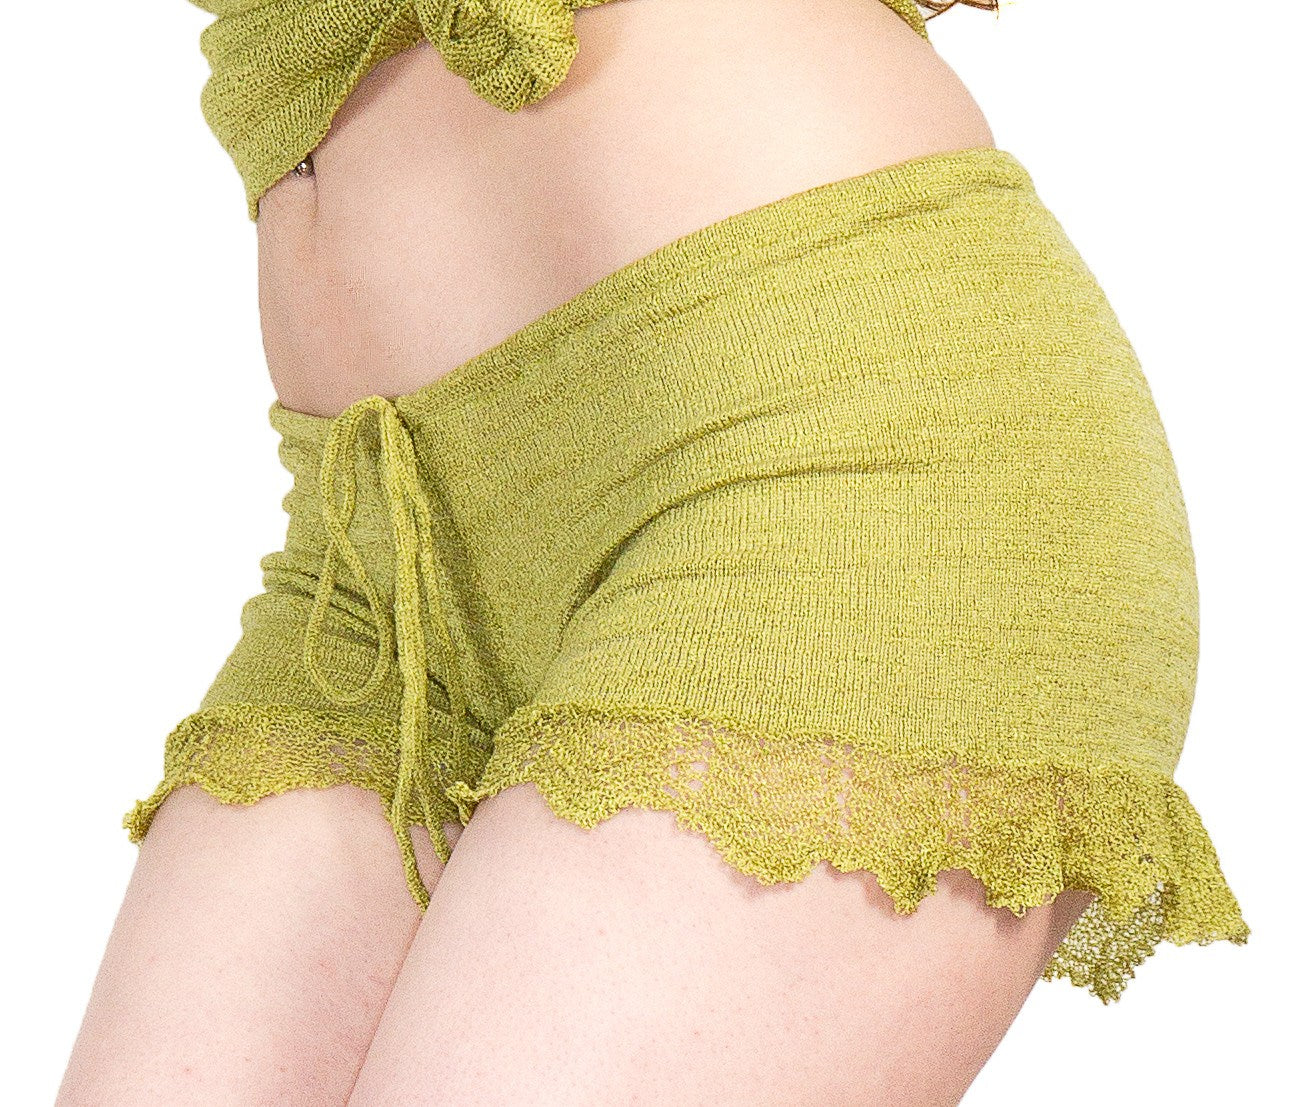 Shorts:  Sexy Lace Trimmed Stretch Knit Drawstring Shorts KrinkeSpun KD dance Made In USA @KDdanceNewYork #MadeInUSA - 5